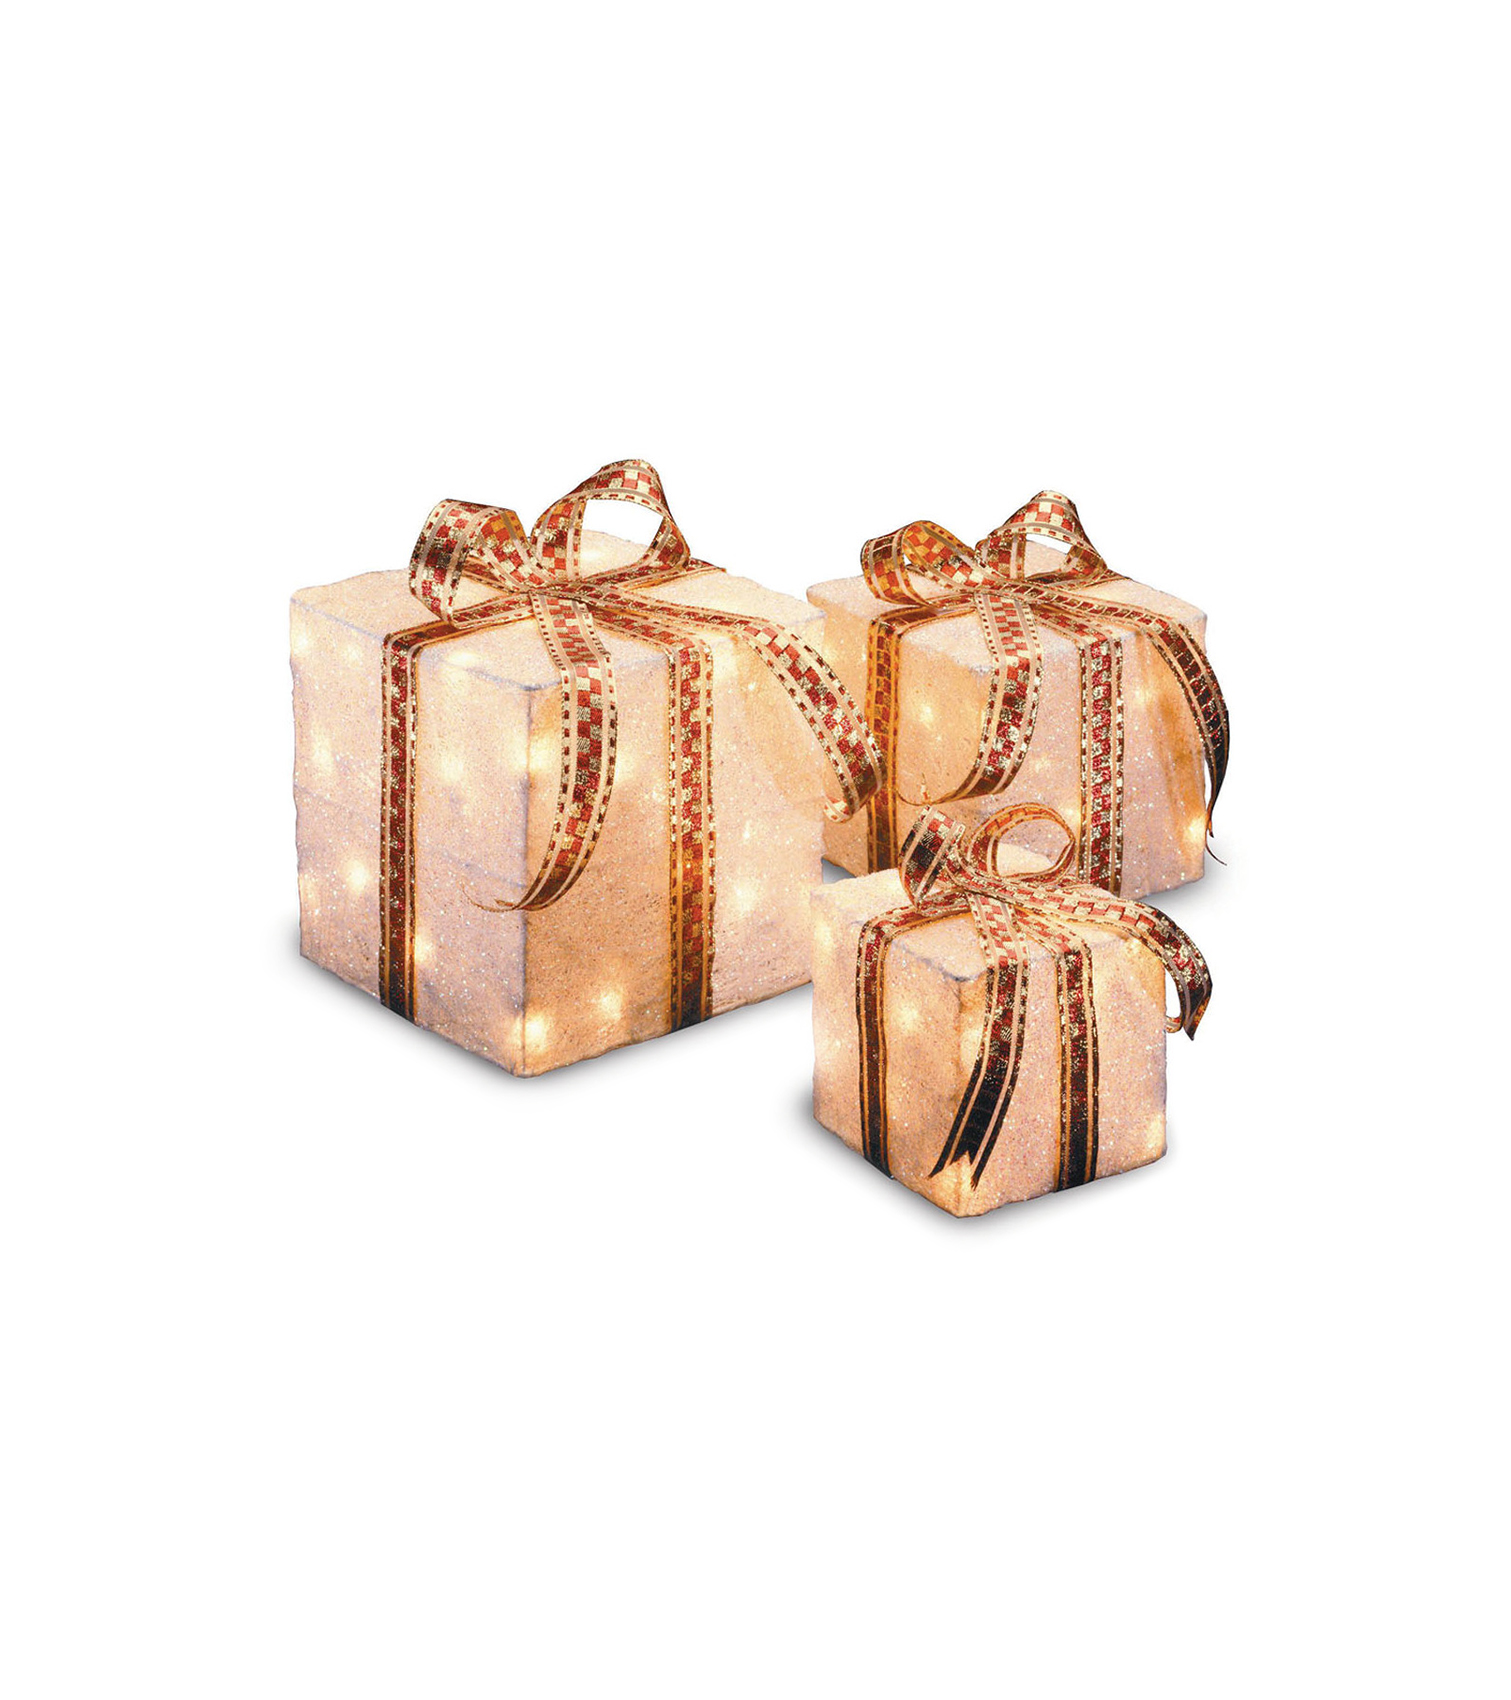 3 Piece Gift Boxed Christmas Decoration Set